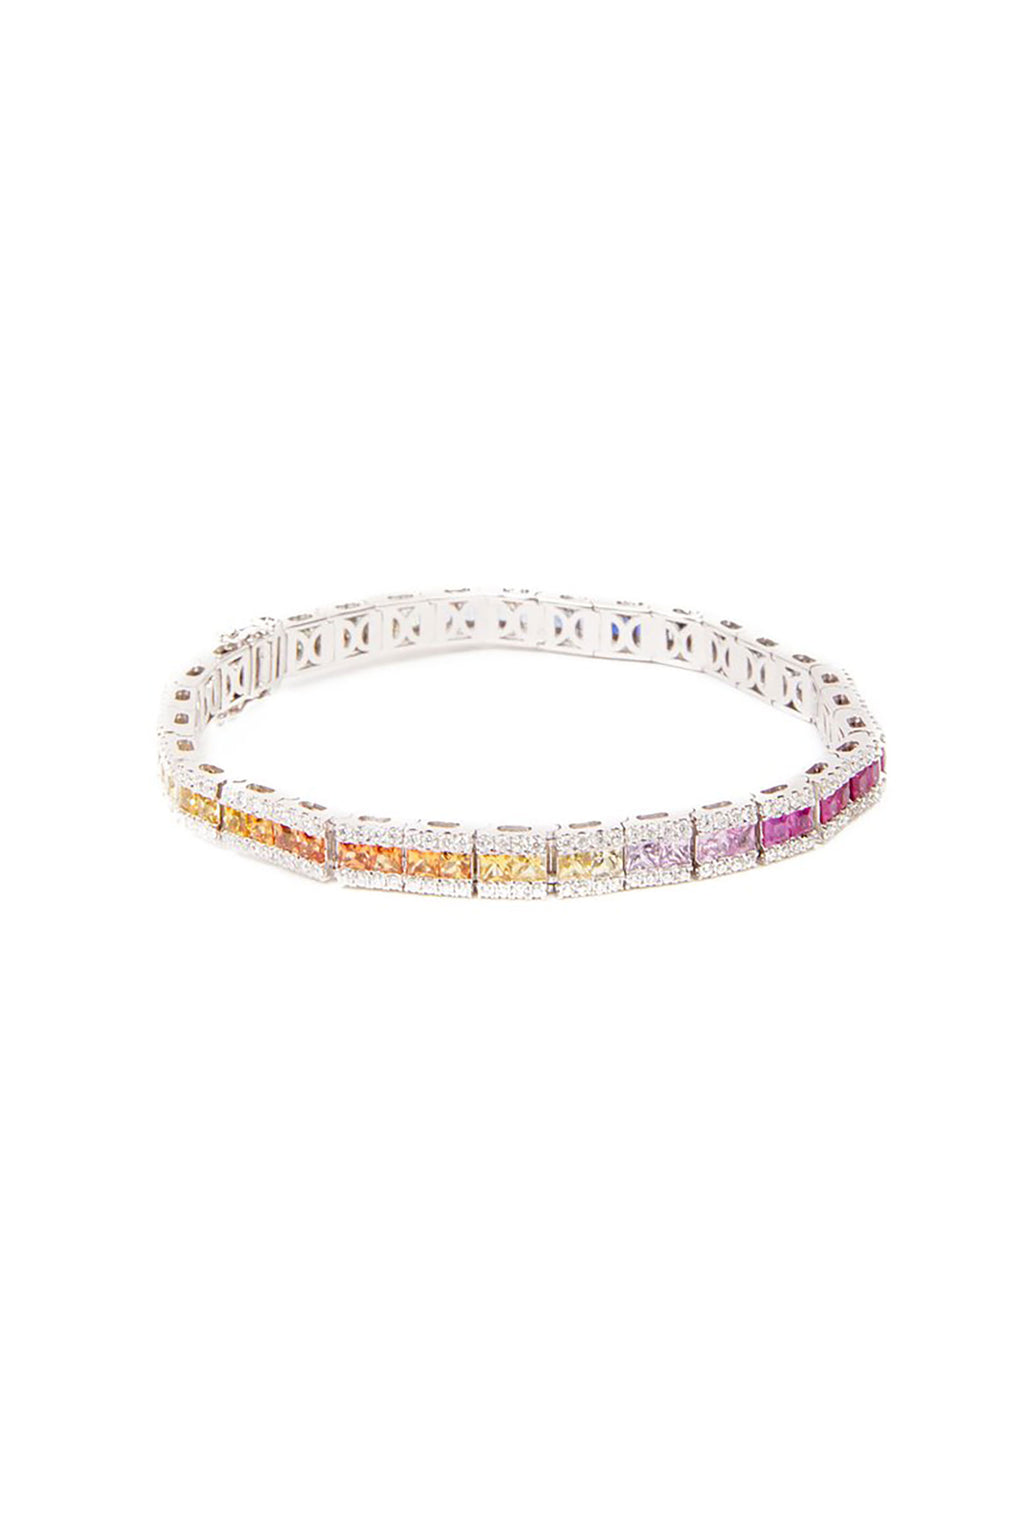 18KT White Gold Rainbow Sapphire and Diamond Tennis Bracelet